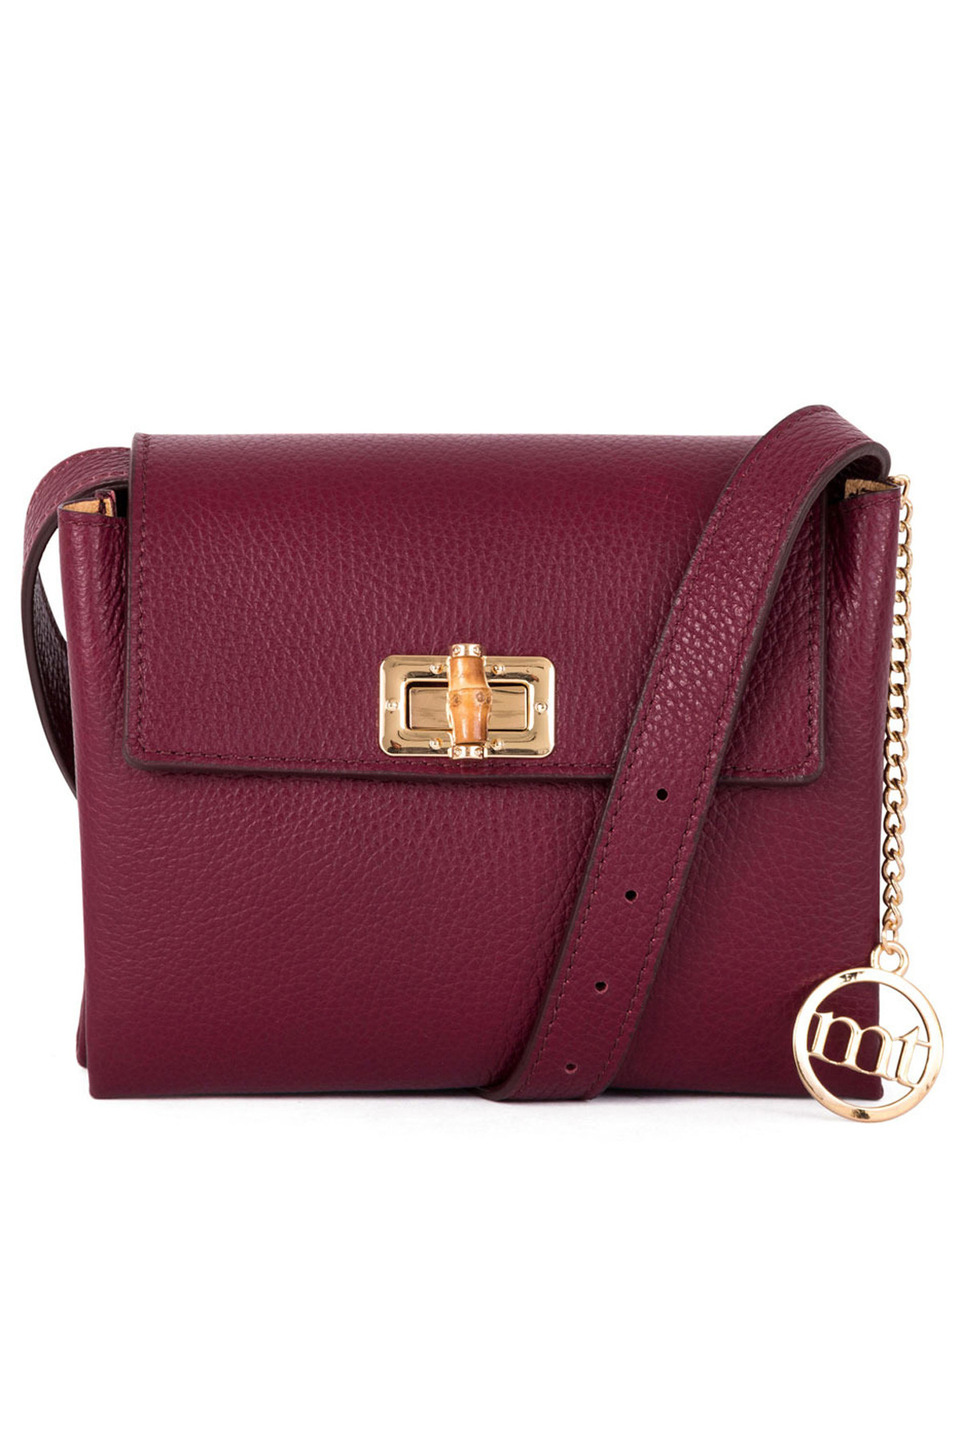 HEIDI HANDBAG IN WINE